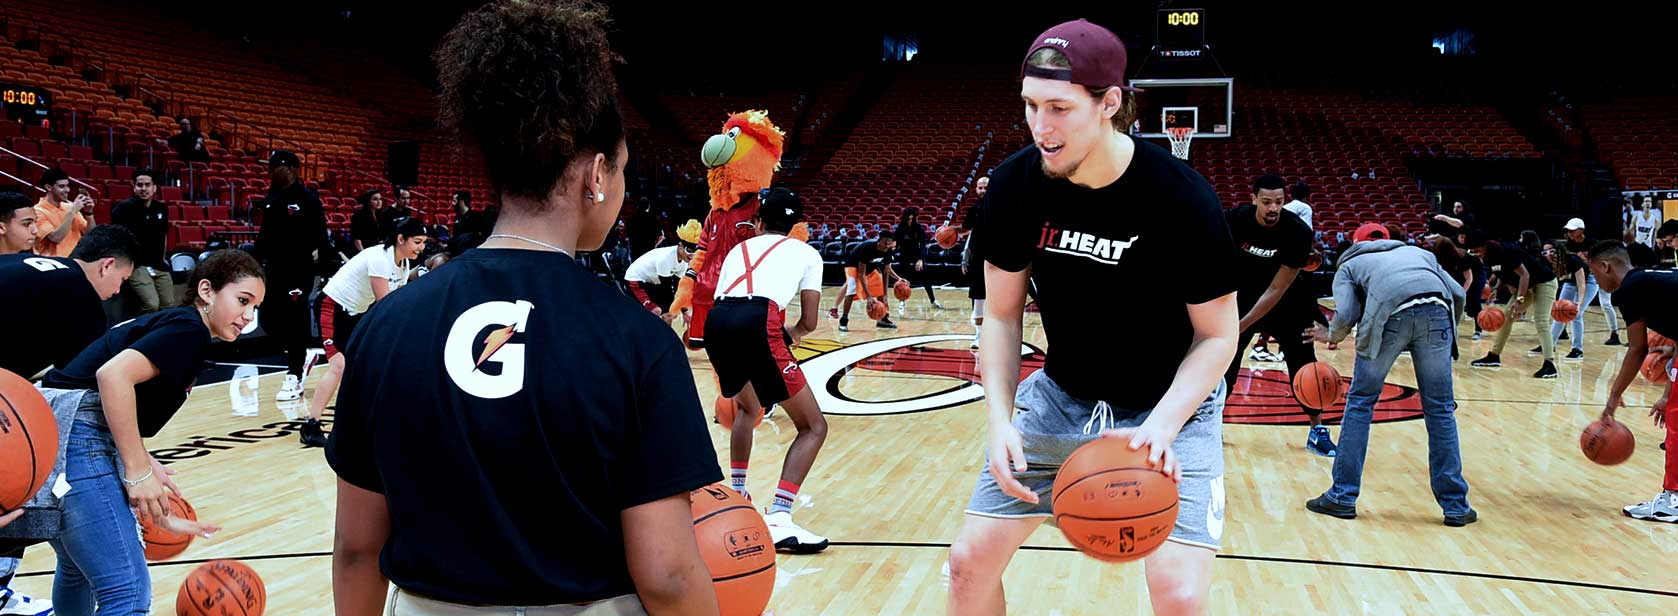 HEAT Camp - Kelly Olynyk